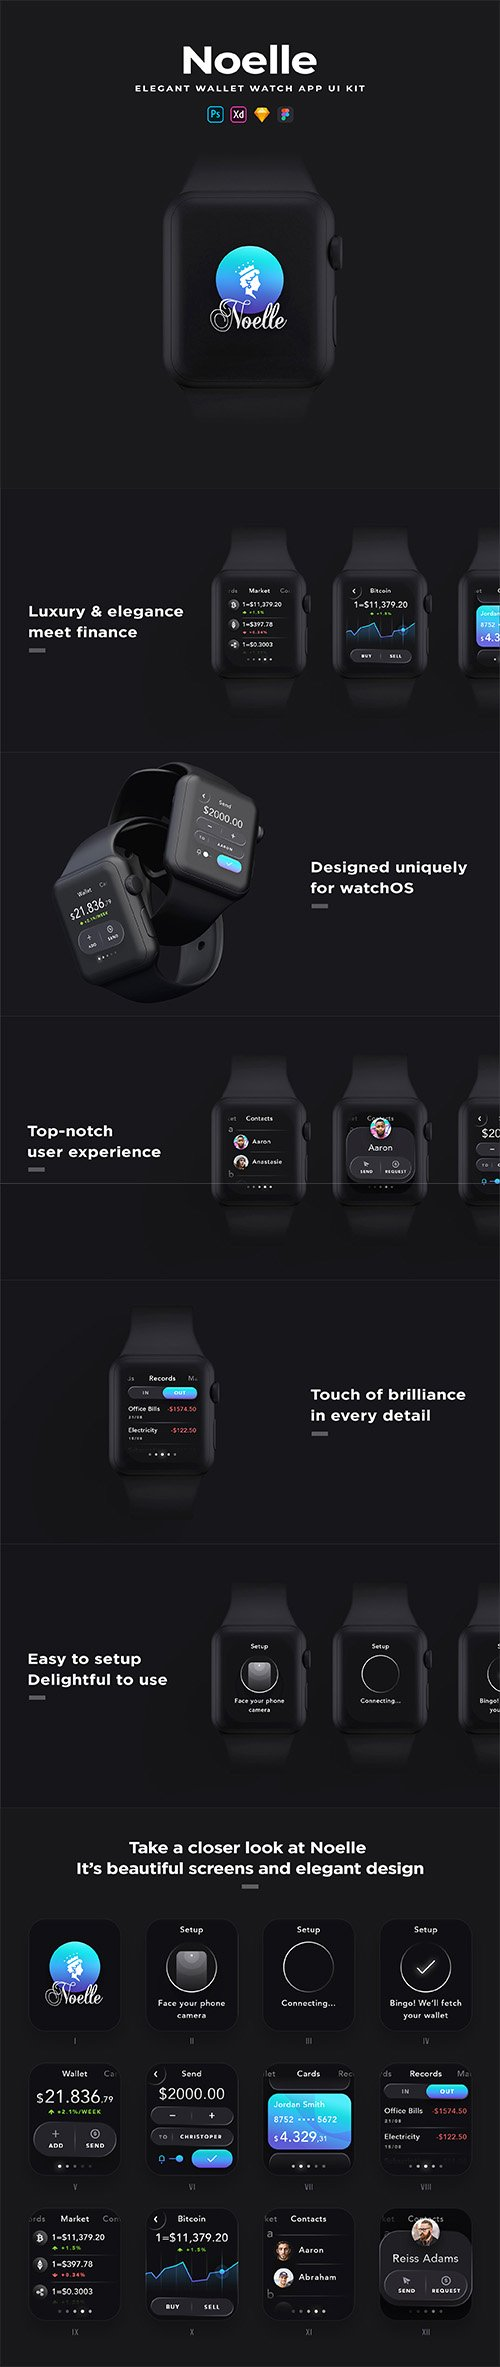 Noelle WatchOS UI Kit